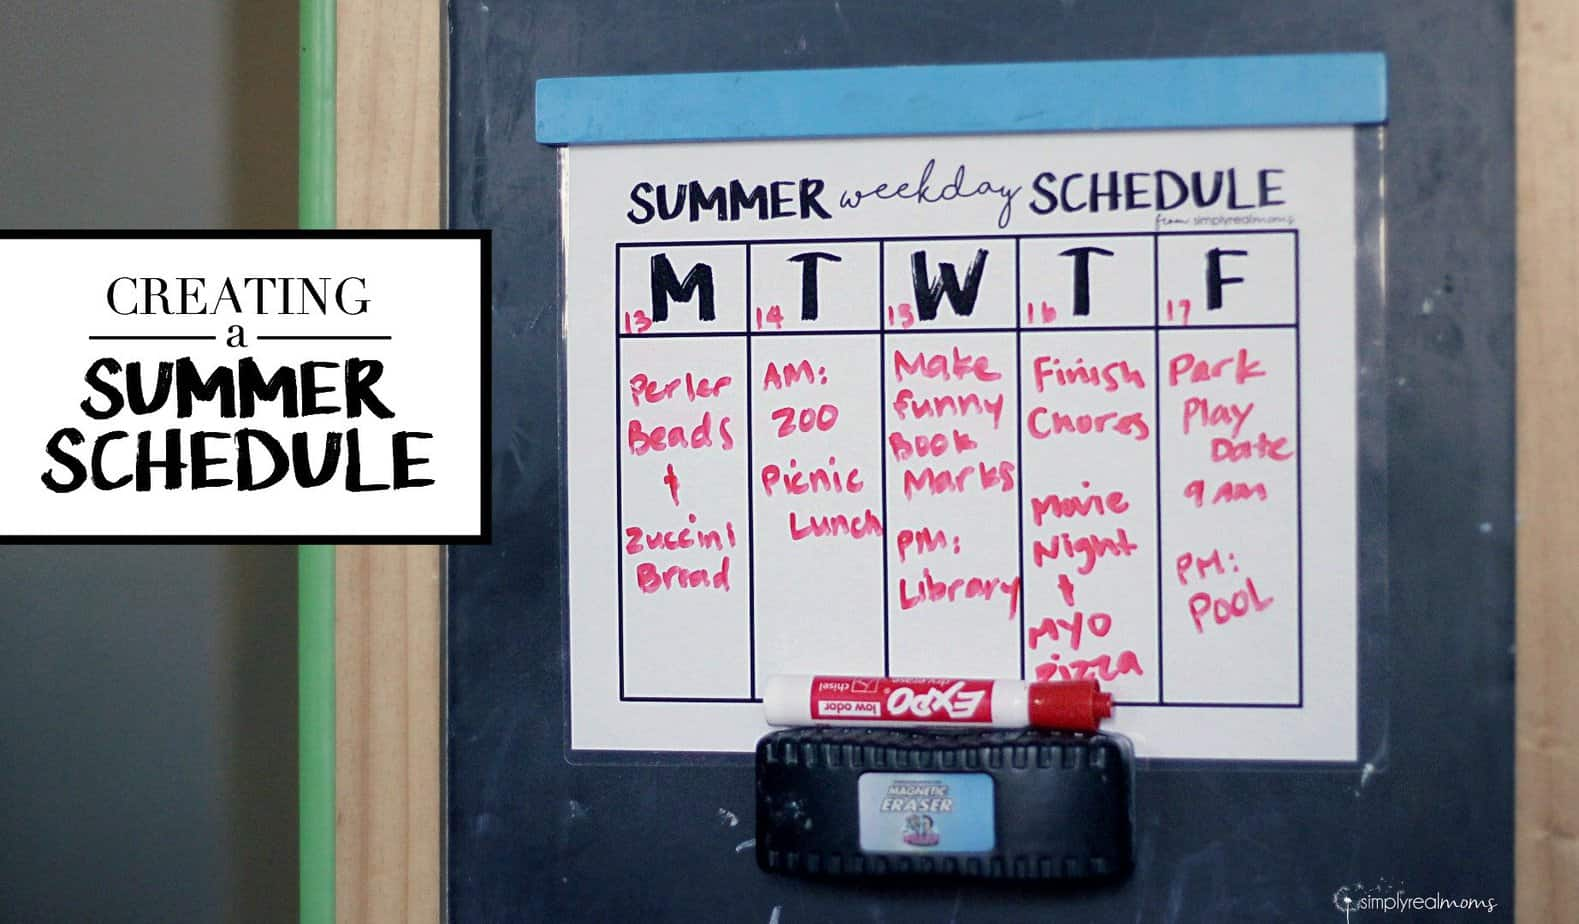 Creating a Summer Schedule